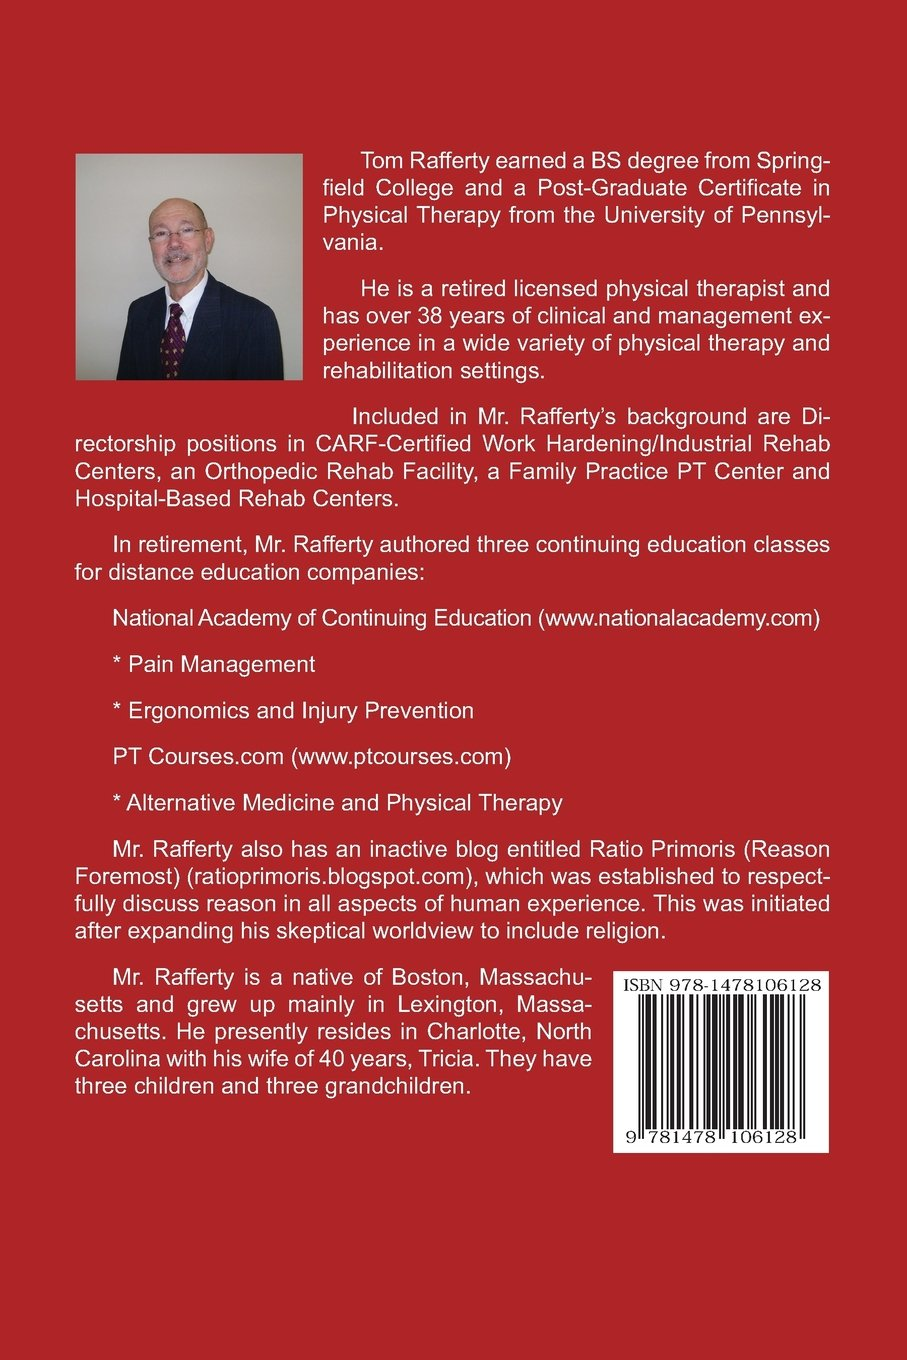 Distance education physical therapy - Making Stuff Up Is Unwise An Introduction To Reason Skepticism And Science Tom Rafferty 9781478106128 Amazon Com Books